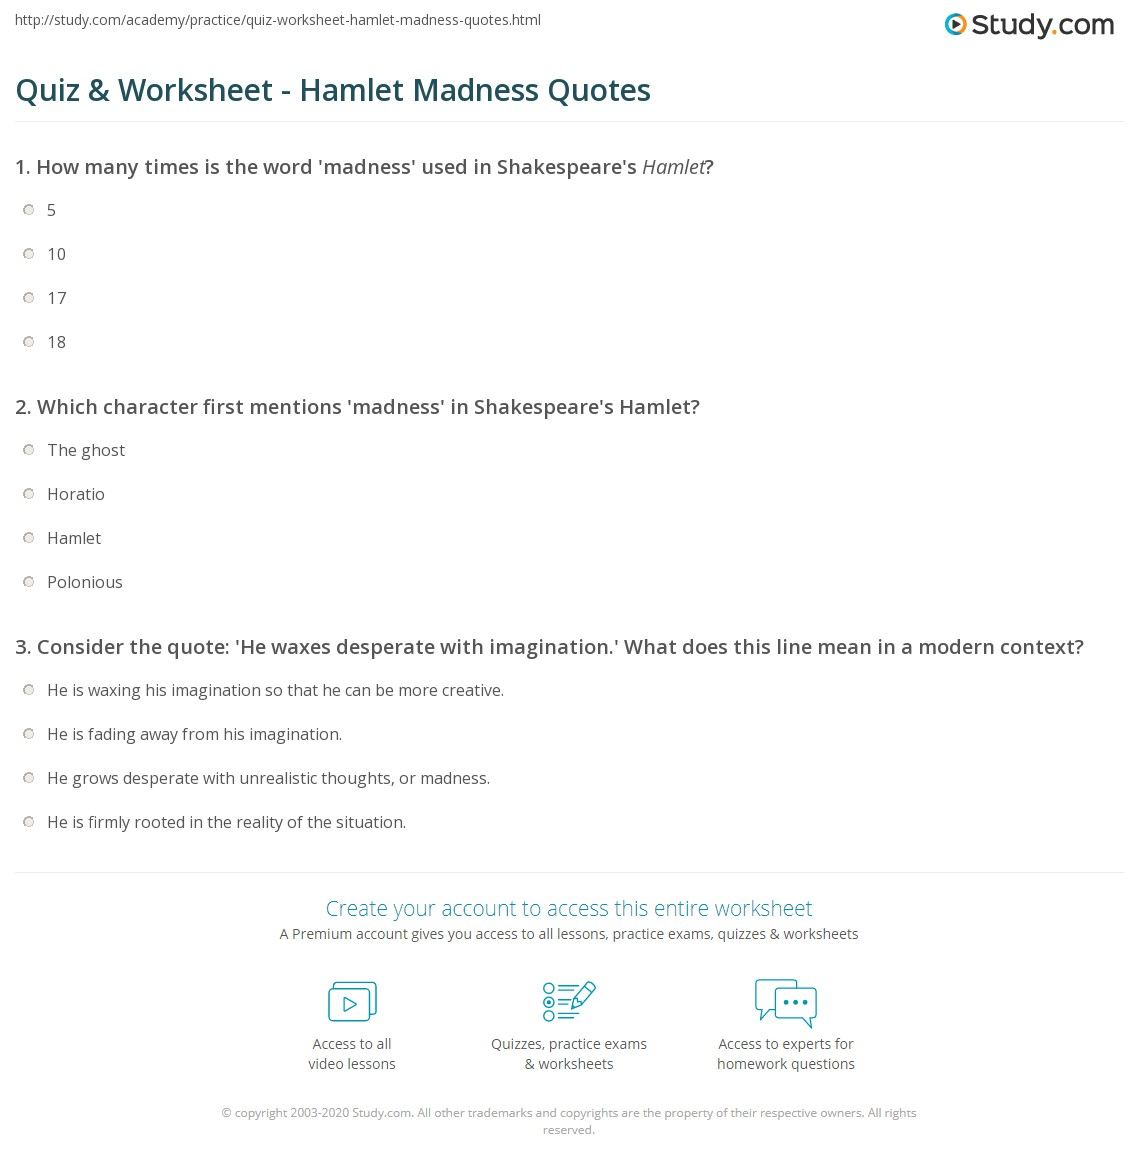 quiz worksheet hamlet madness quotes com print hamlet madness quotes worksheet